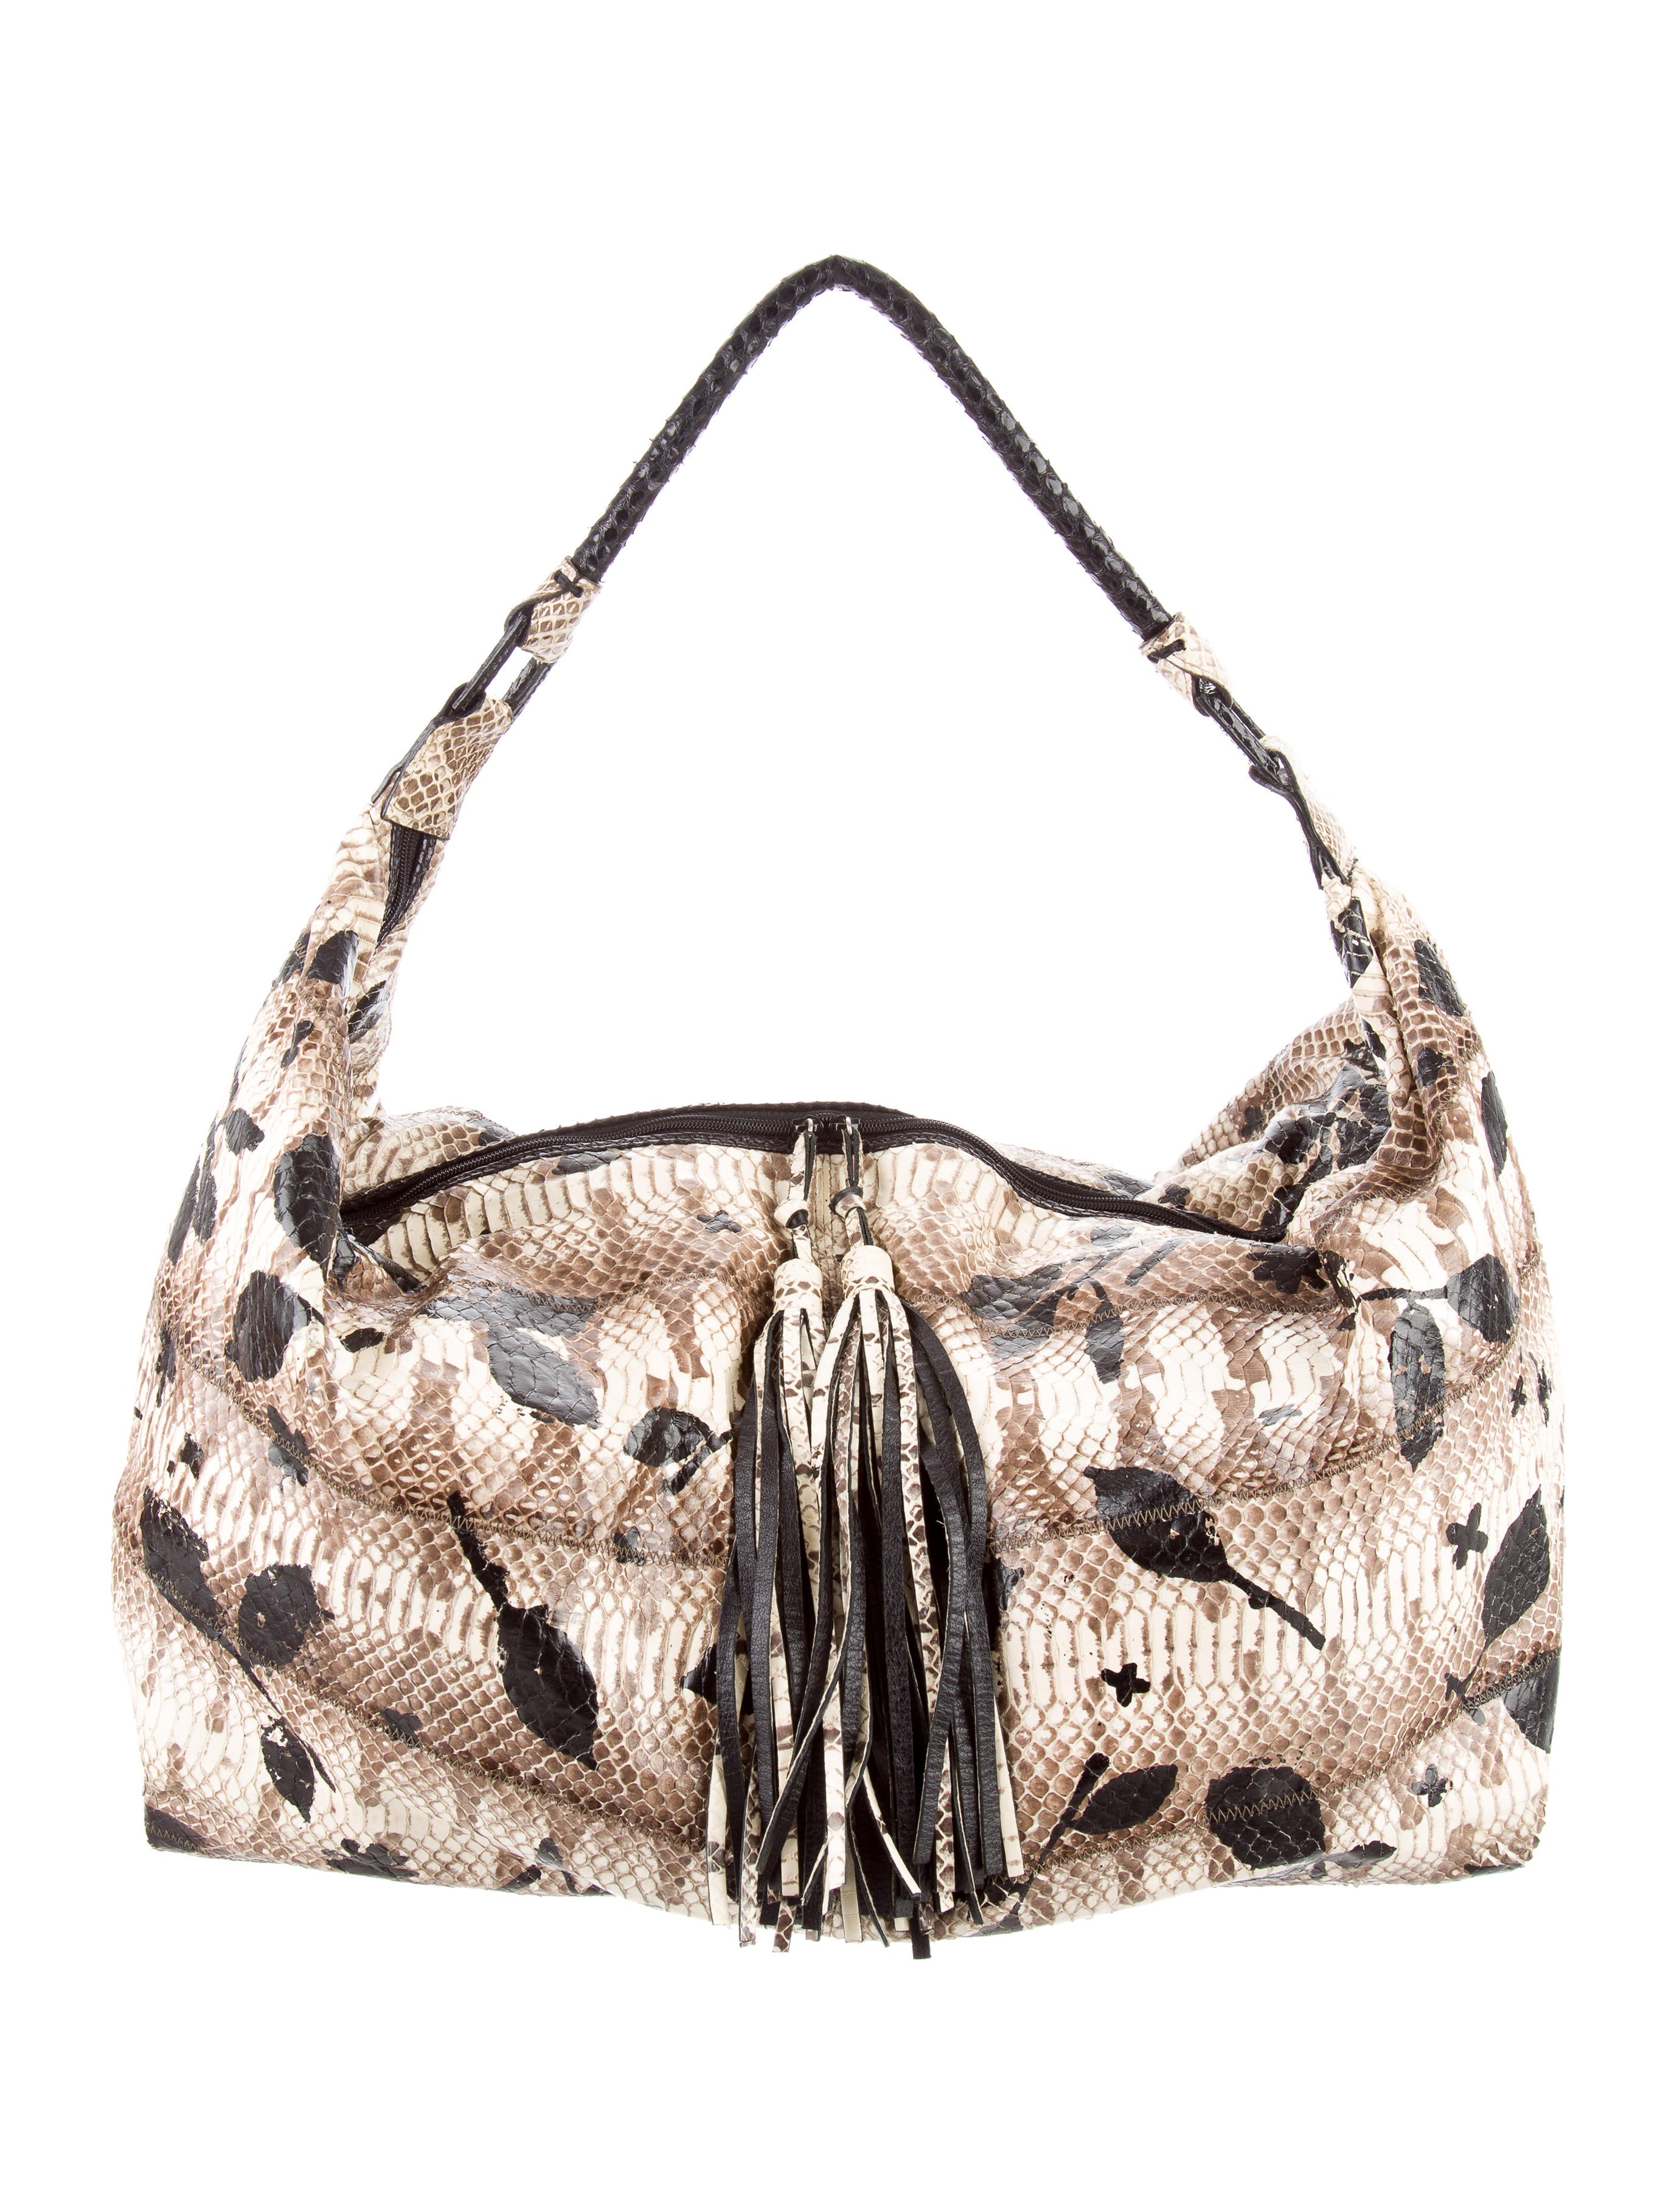 Small faceted beads grace the front of this roomy snakeprint hobo bag, creating a touch of shimmer. Zip closure Three interior pockets 14